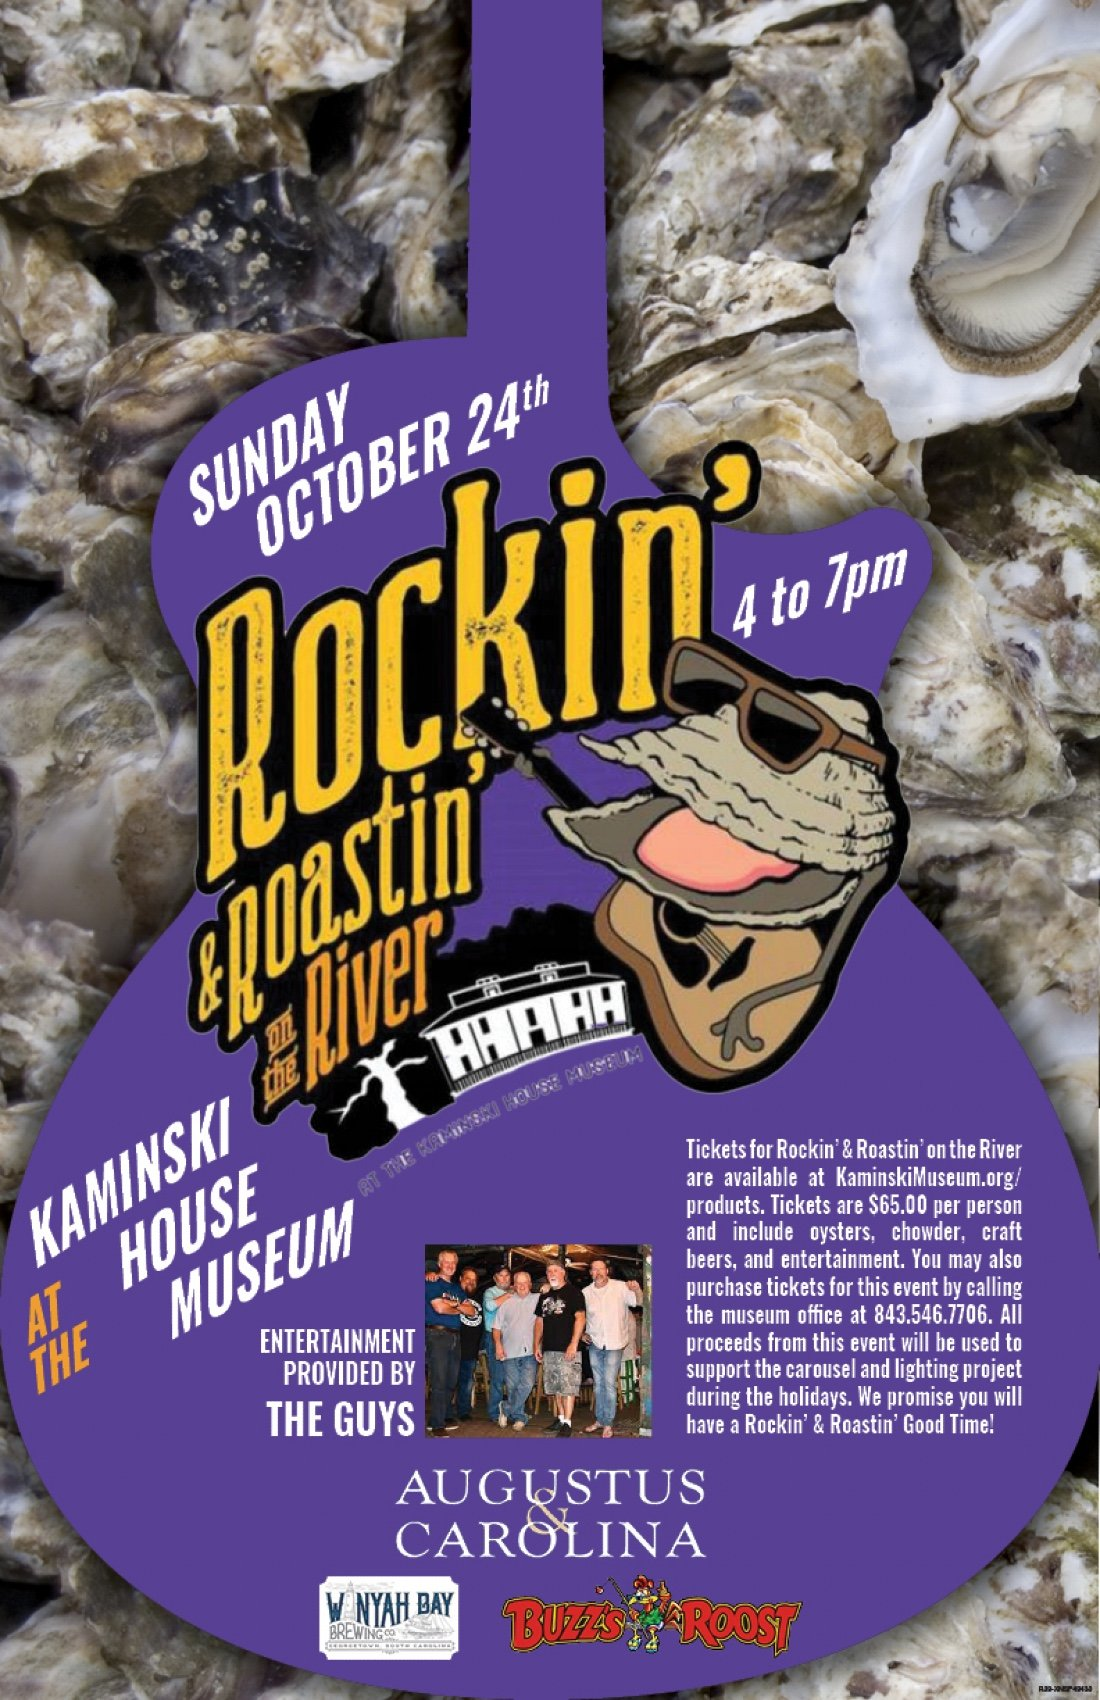 Rockin' & Roastin' on the River at the Kaminski House Museum, 24 October   Event in Georgetown   AllEvents.in